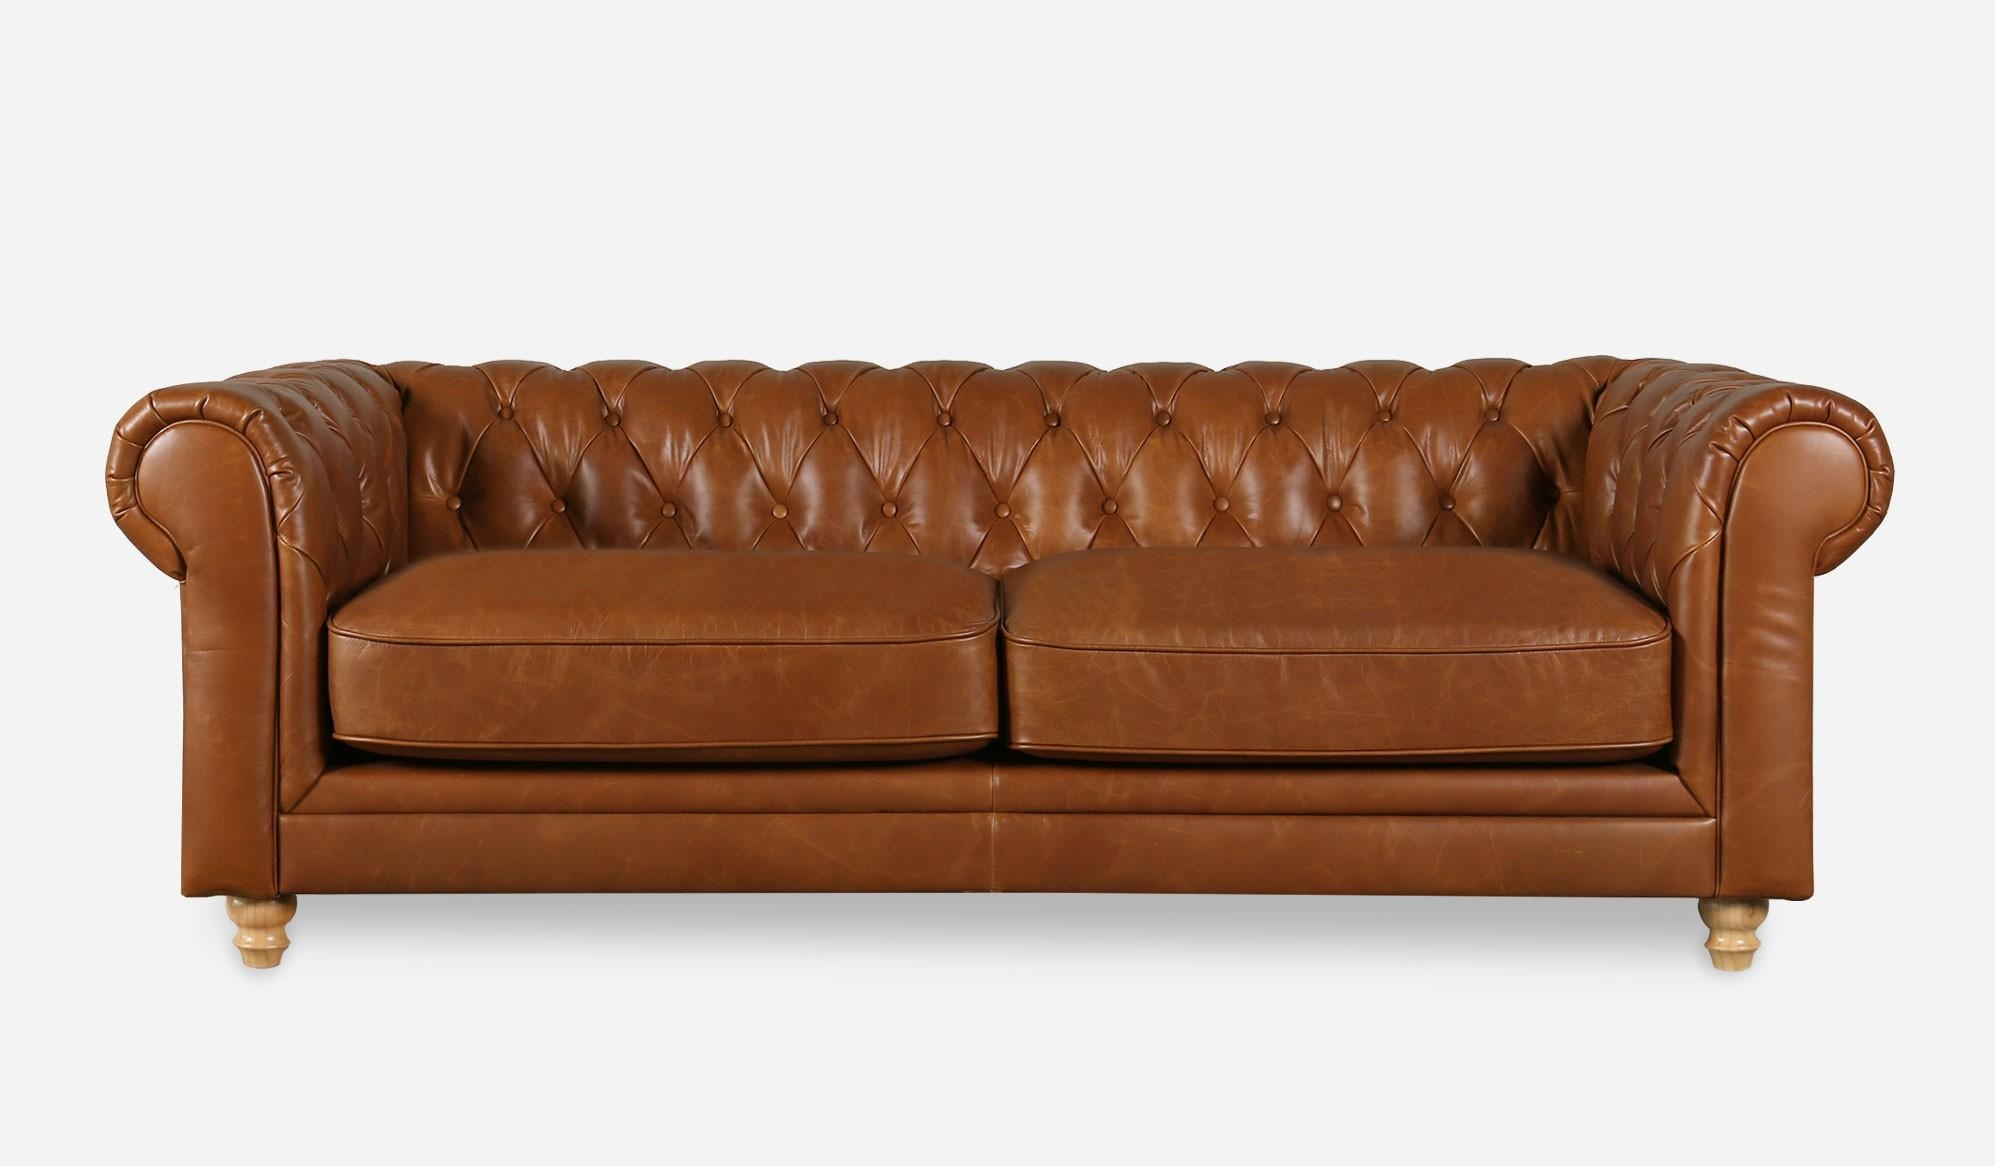 Sofas Center : Camel Leather Sofa Bonnie Aniline Blu Dot Carmel Inside Camel Color Leather Sofas (View 16 of 20)